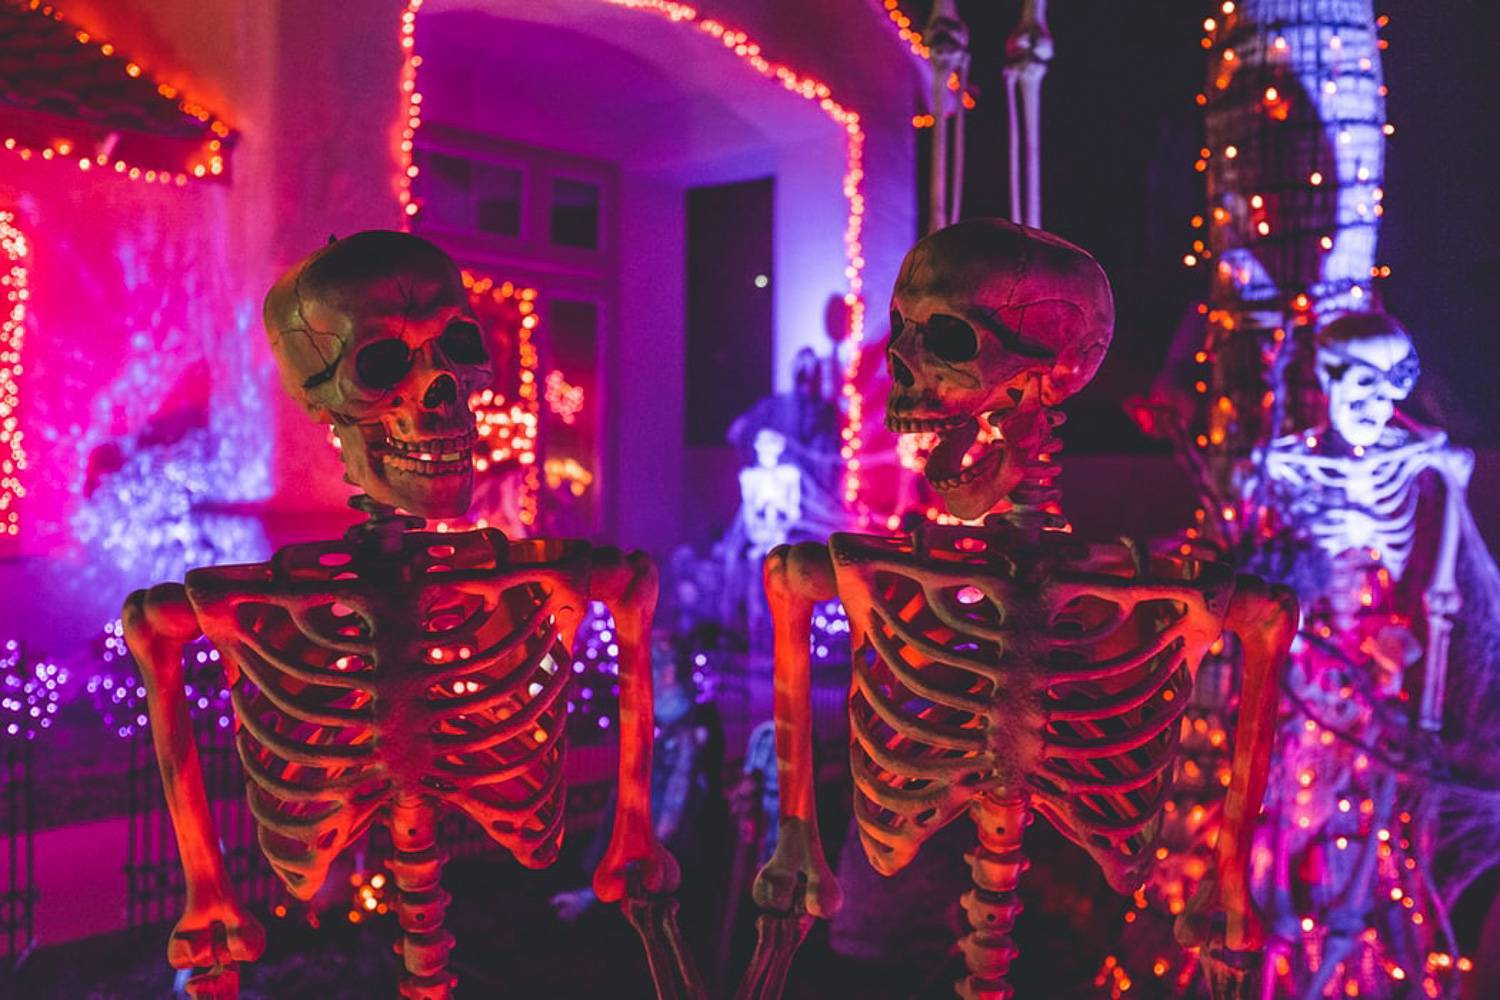 An image of glowing skeletons and Halloween lights at night in the Bronx.